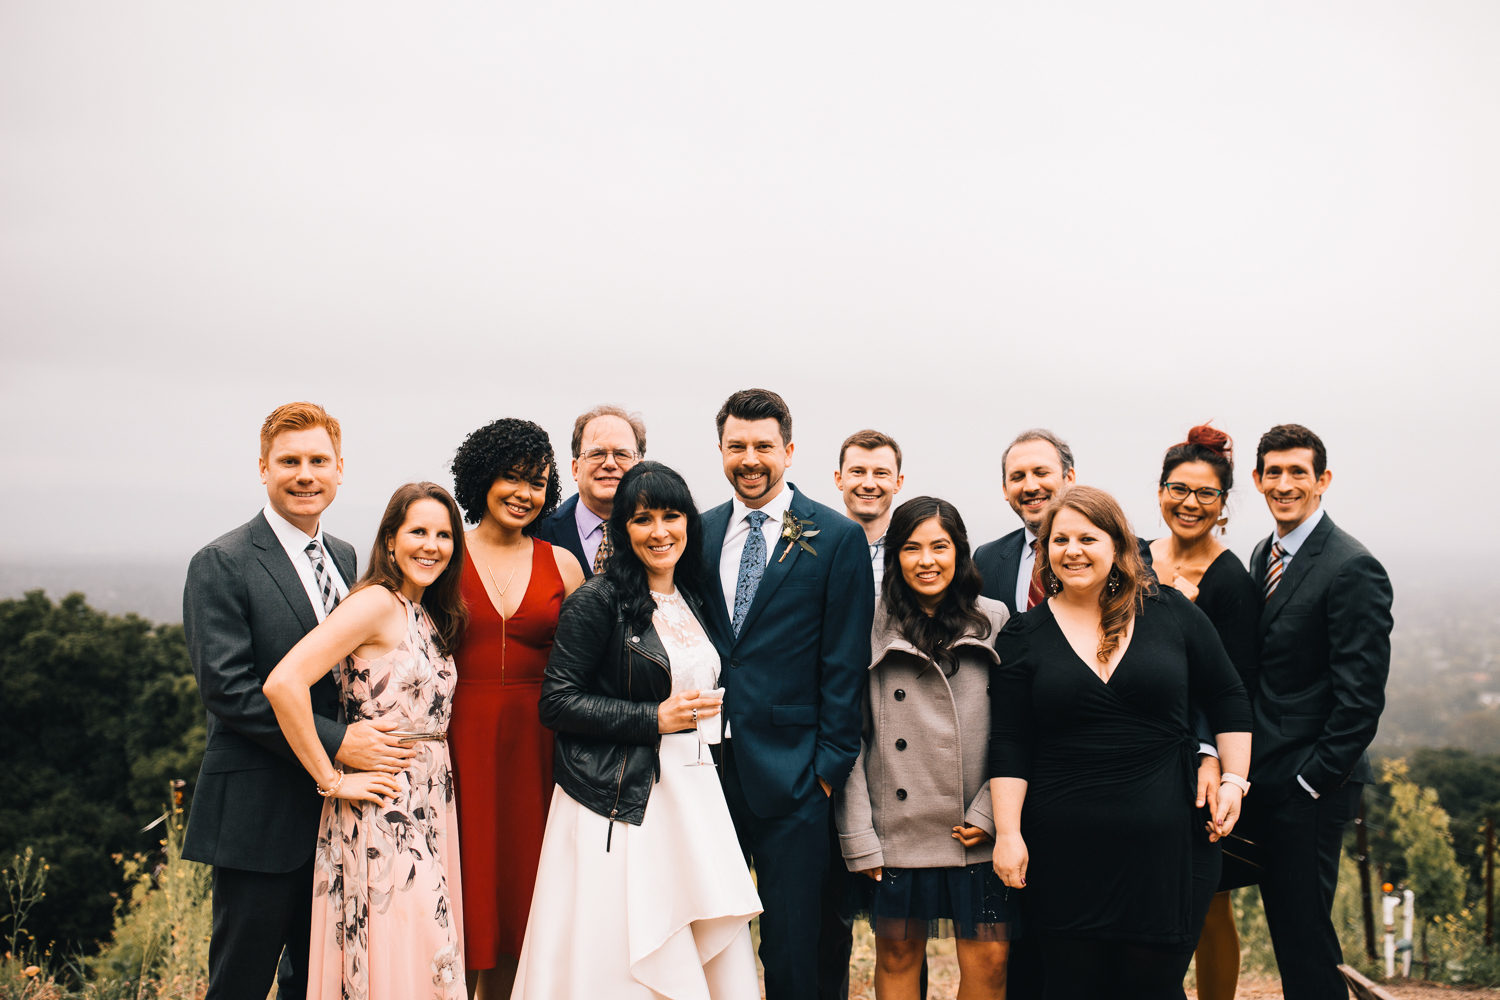 2019_05_ 182019.05.19 Lisa + Eddie South Bay Wedding Blog Photos Edited For Web 0130.jpg